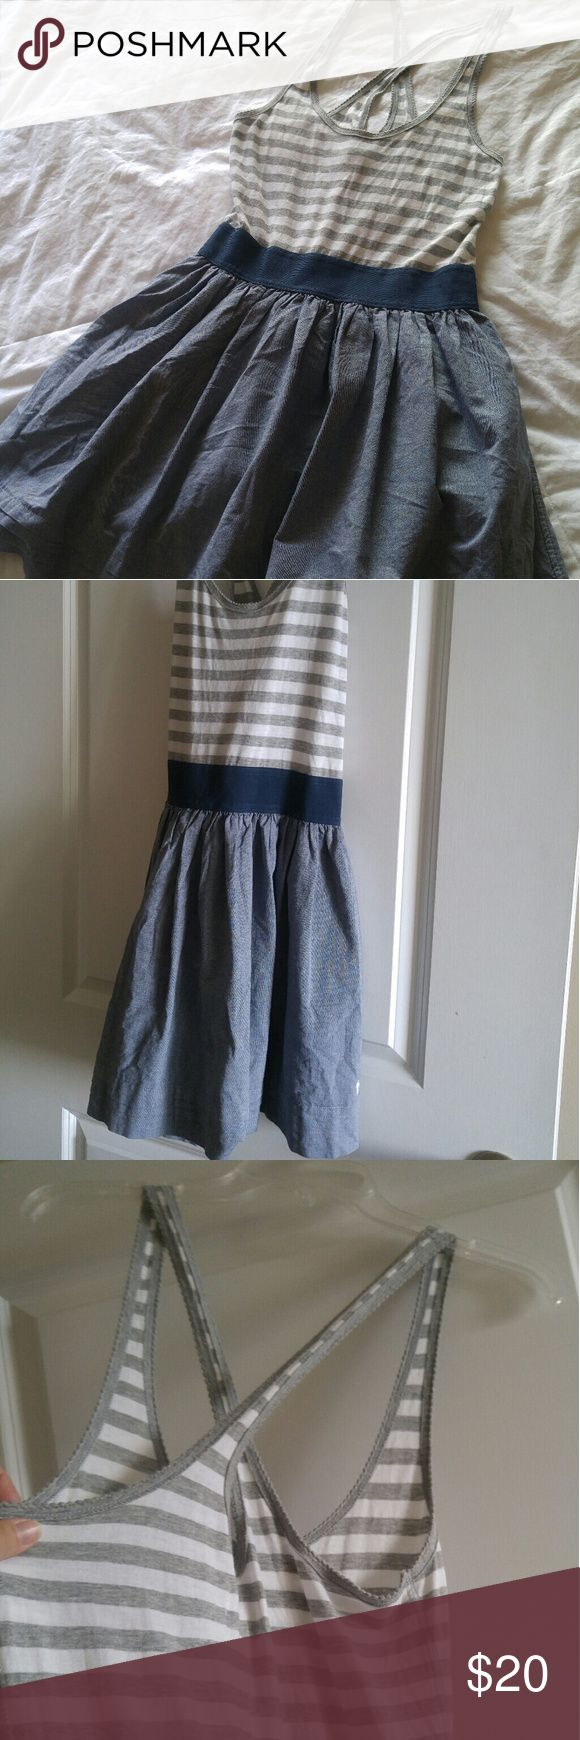 Abercrombie and Fitch Dress Fun, comfy and flirty dress for spring and summer with criss cross back and skirt with lining that gives it a little lift Abercrombie & Fitch Dresses Mini